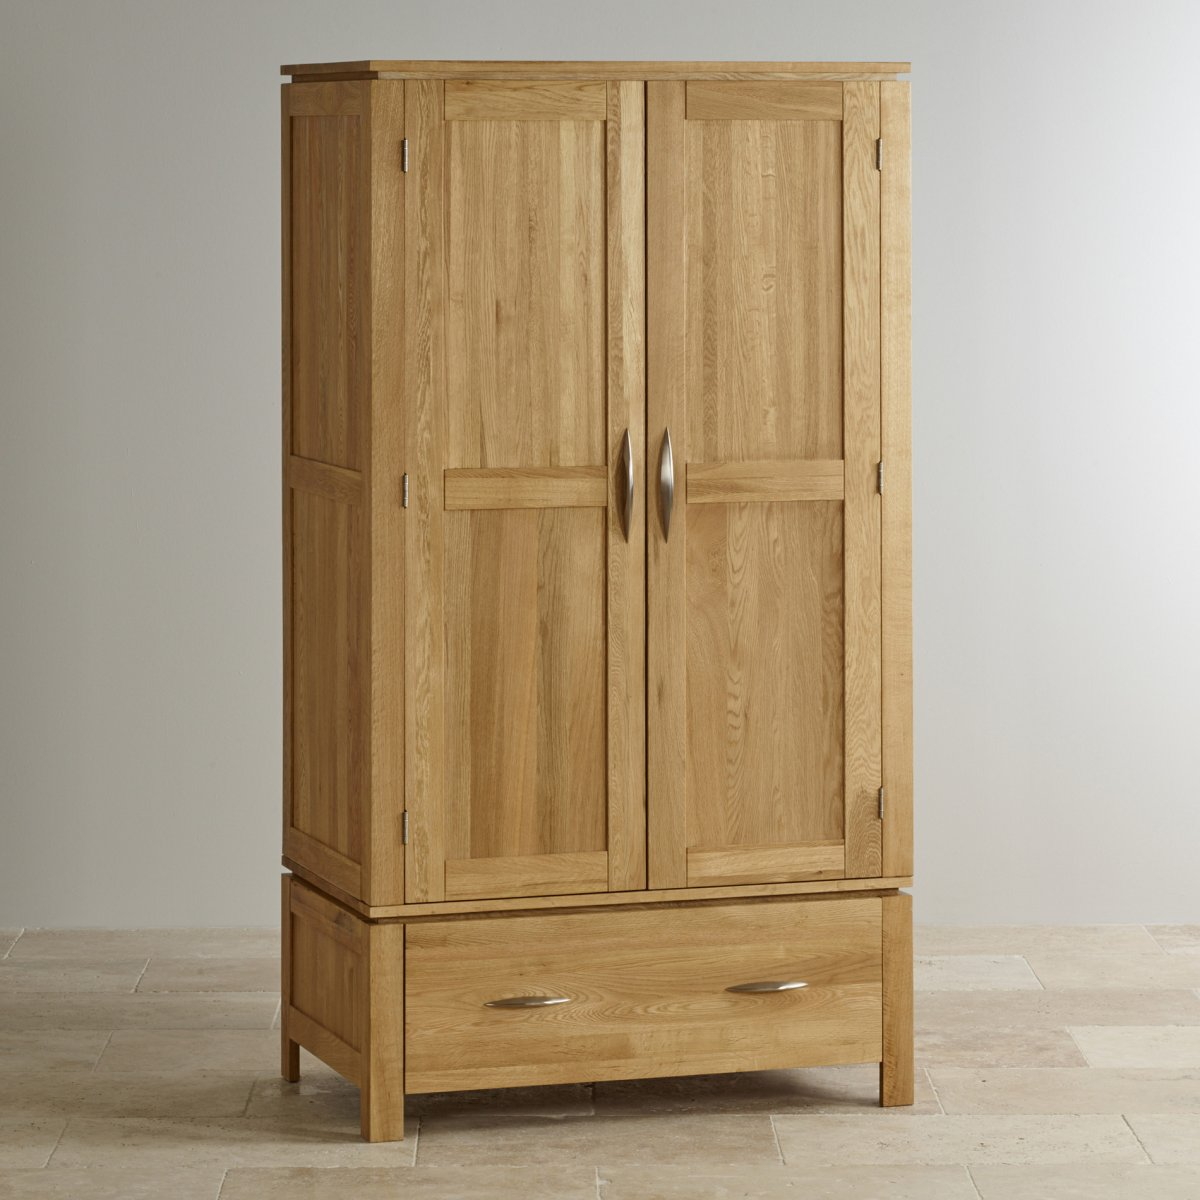 galway natural solid oak double wardrobe bedroom furniture. Black Bedroom Furniture Sets. Home Design Ideas